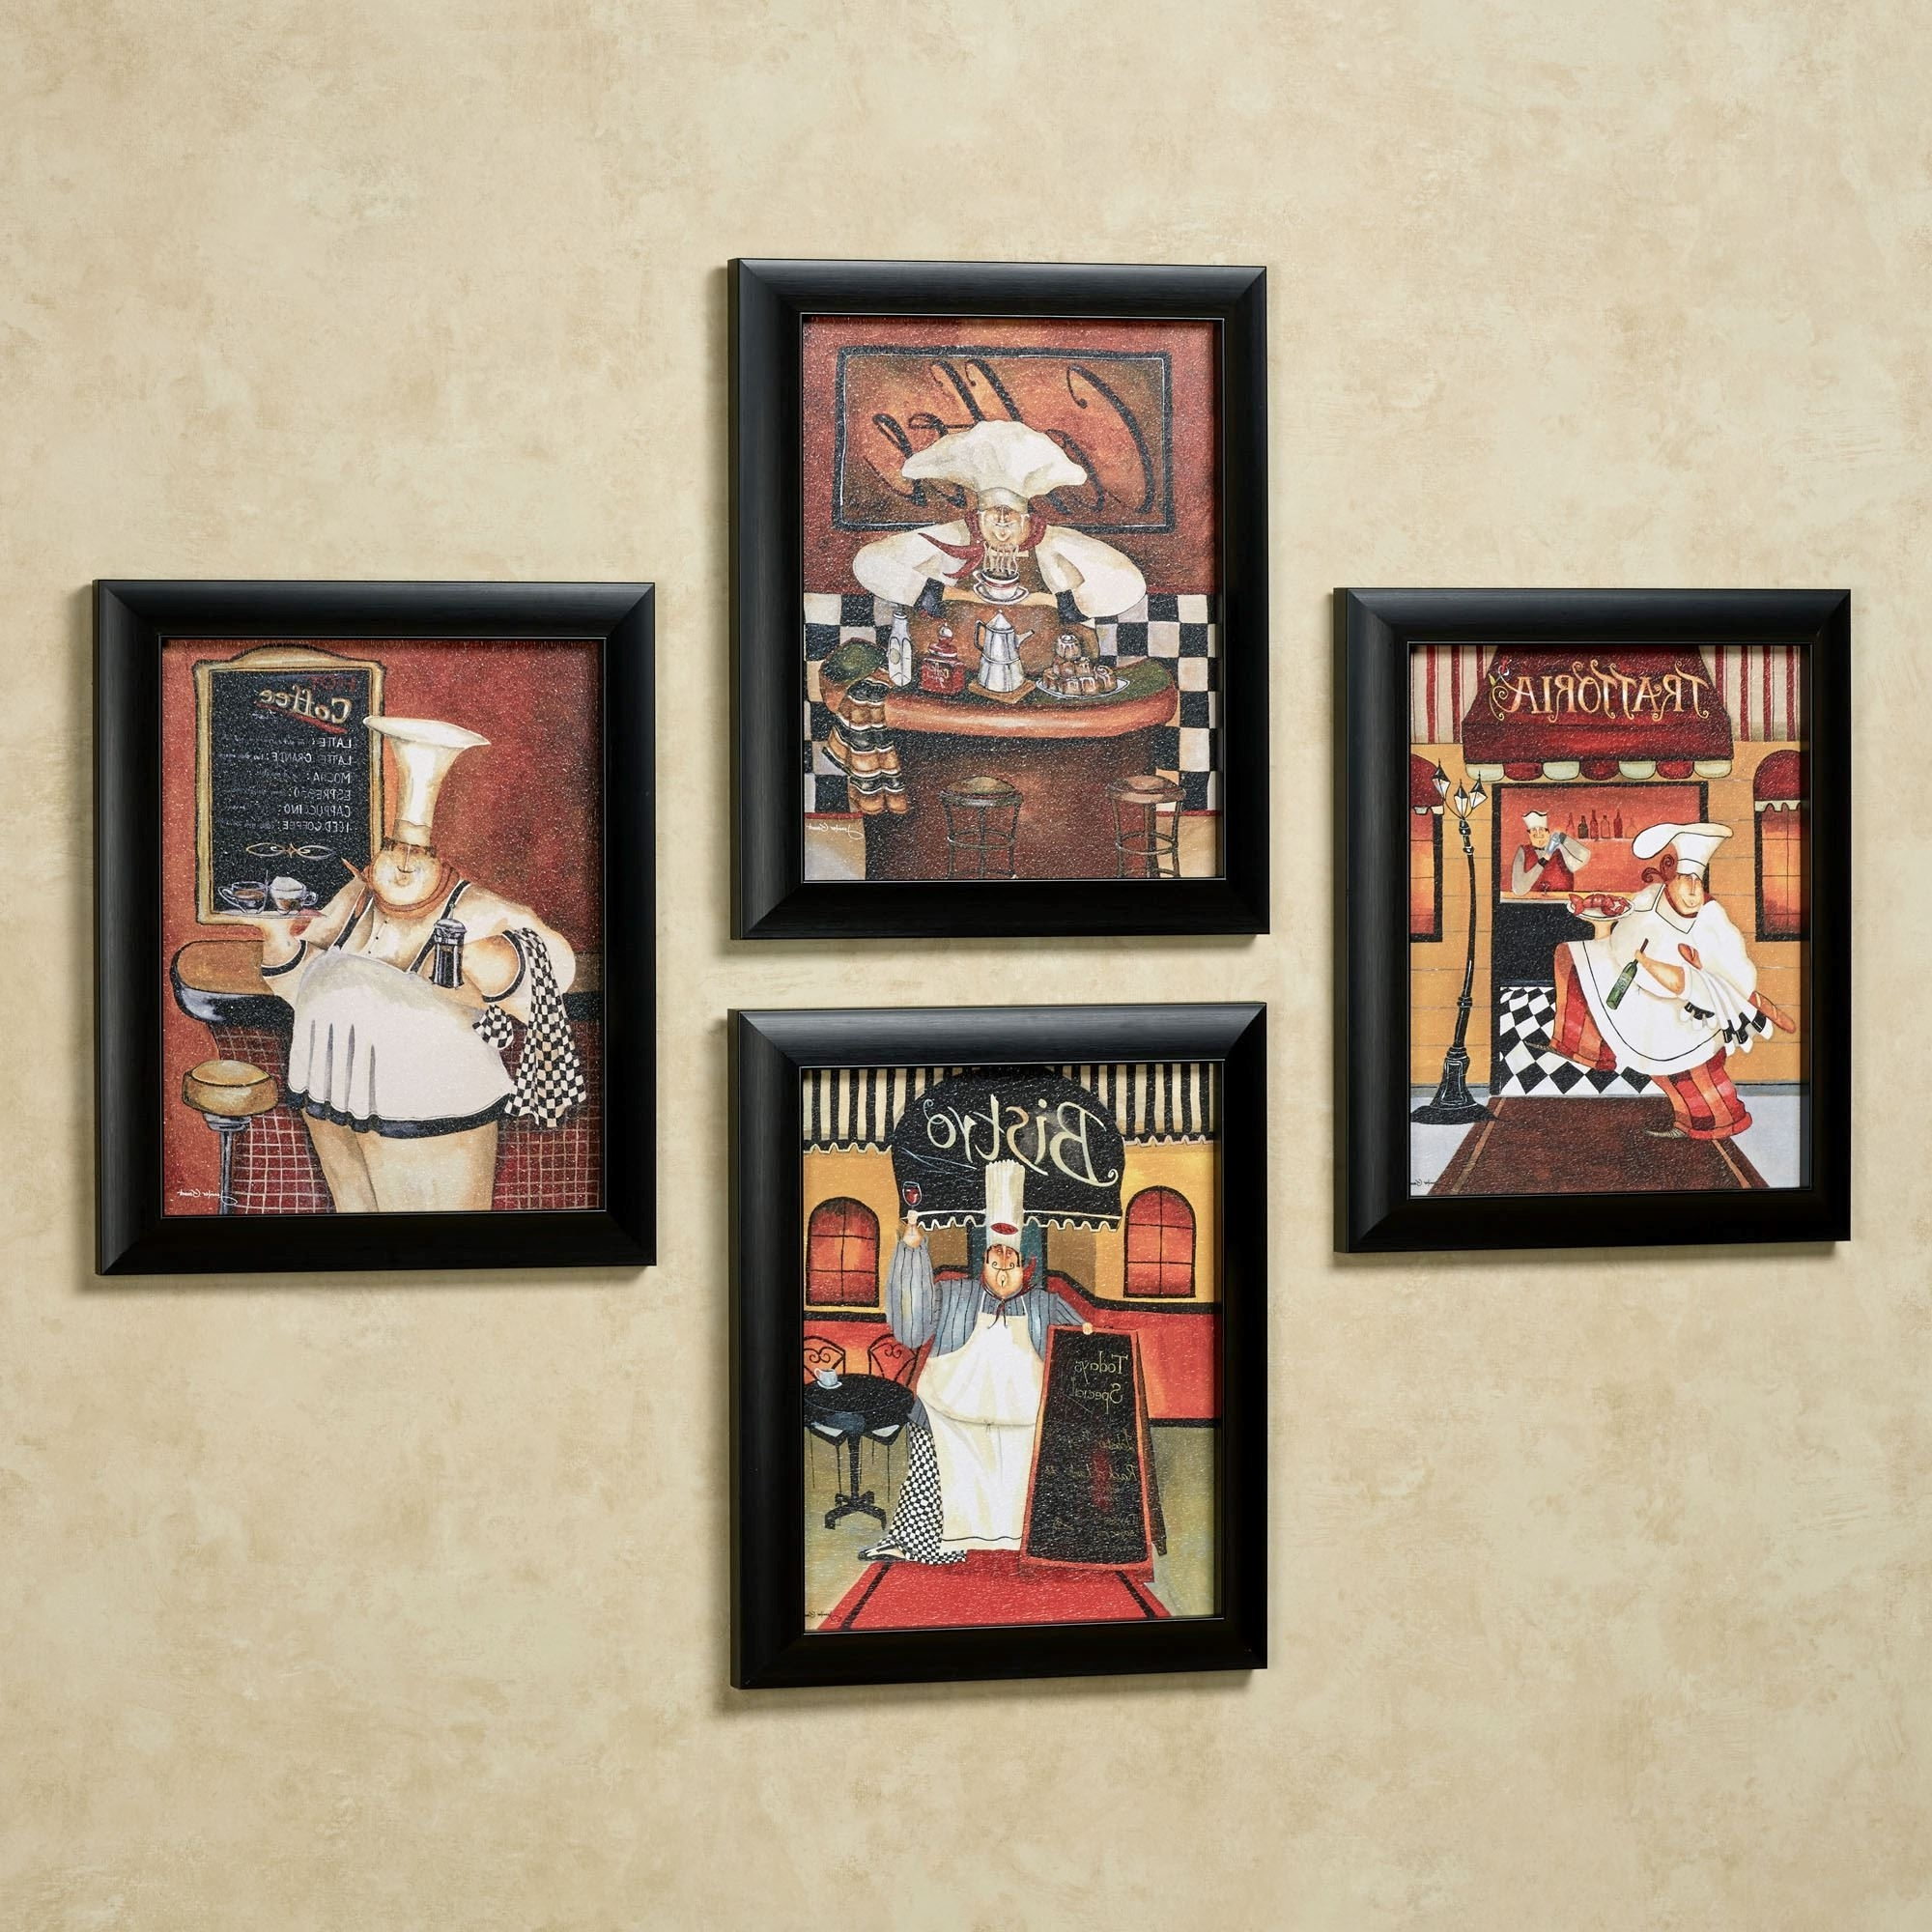 Sonoma Chef Framed Wall Art Set Intended For 2017 Wall Art Sets (View 7 of 15)